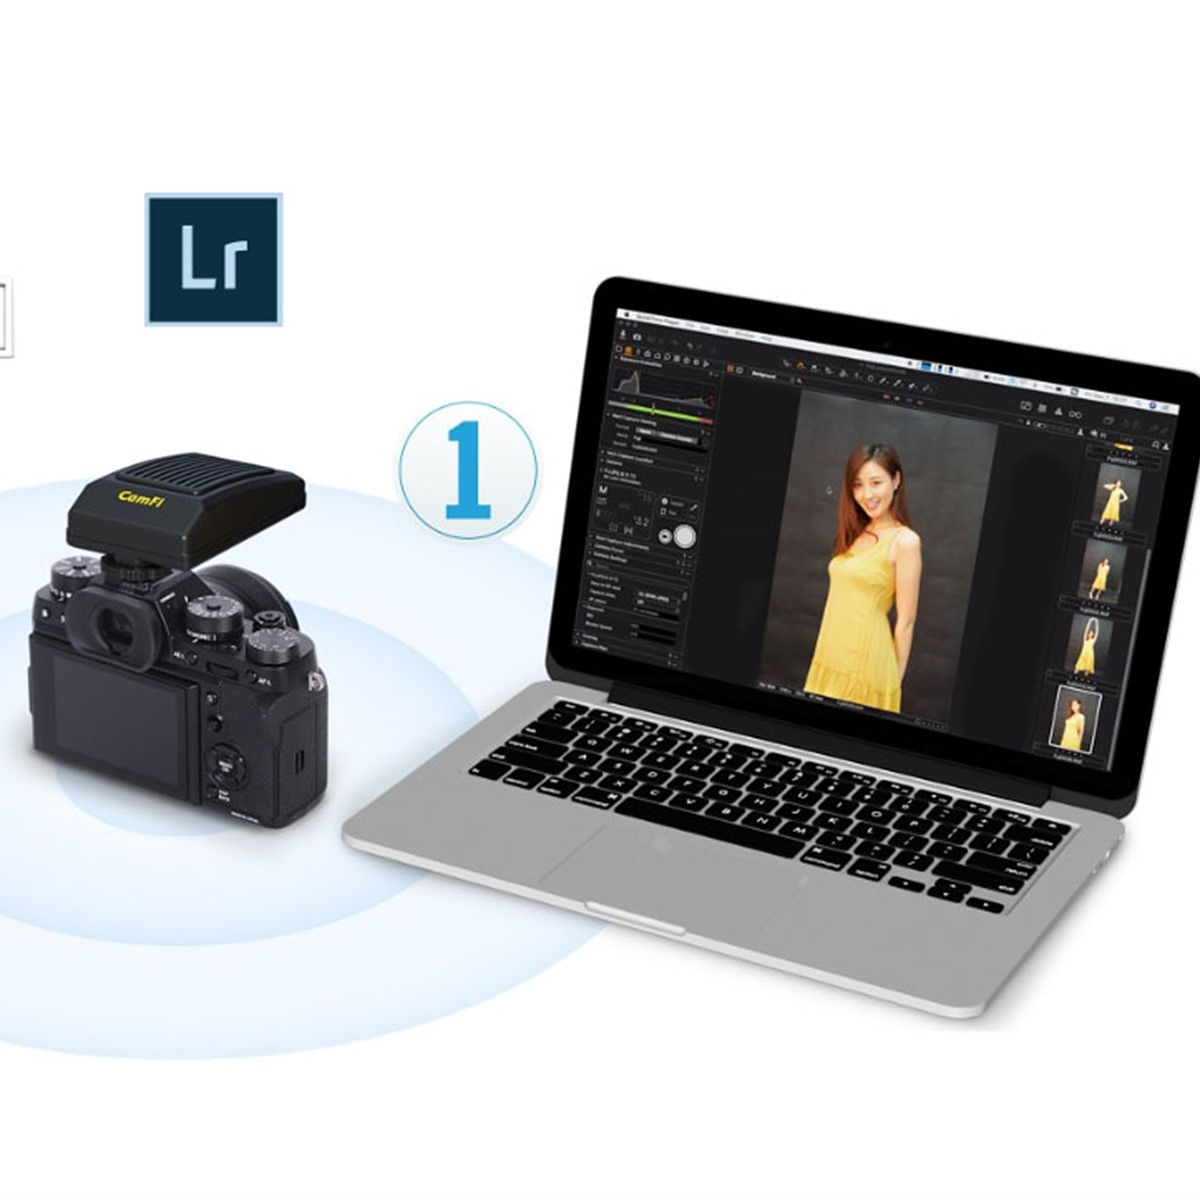 CamFi Pro Plus brings wireless tethering to 3rd party apps: Digital